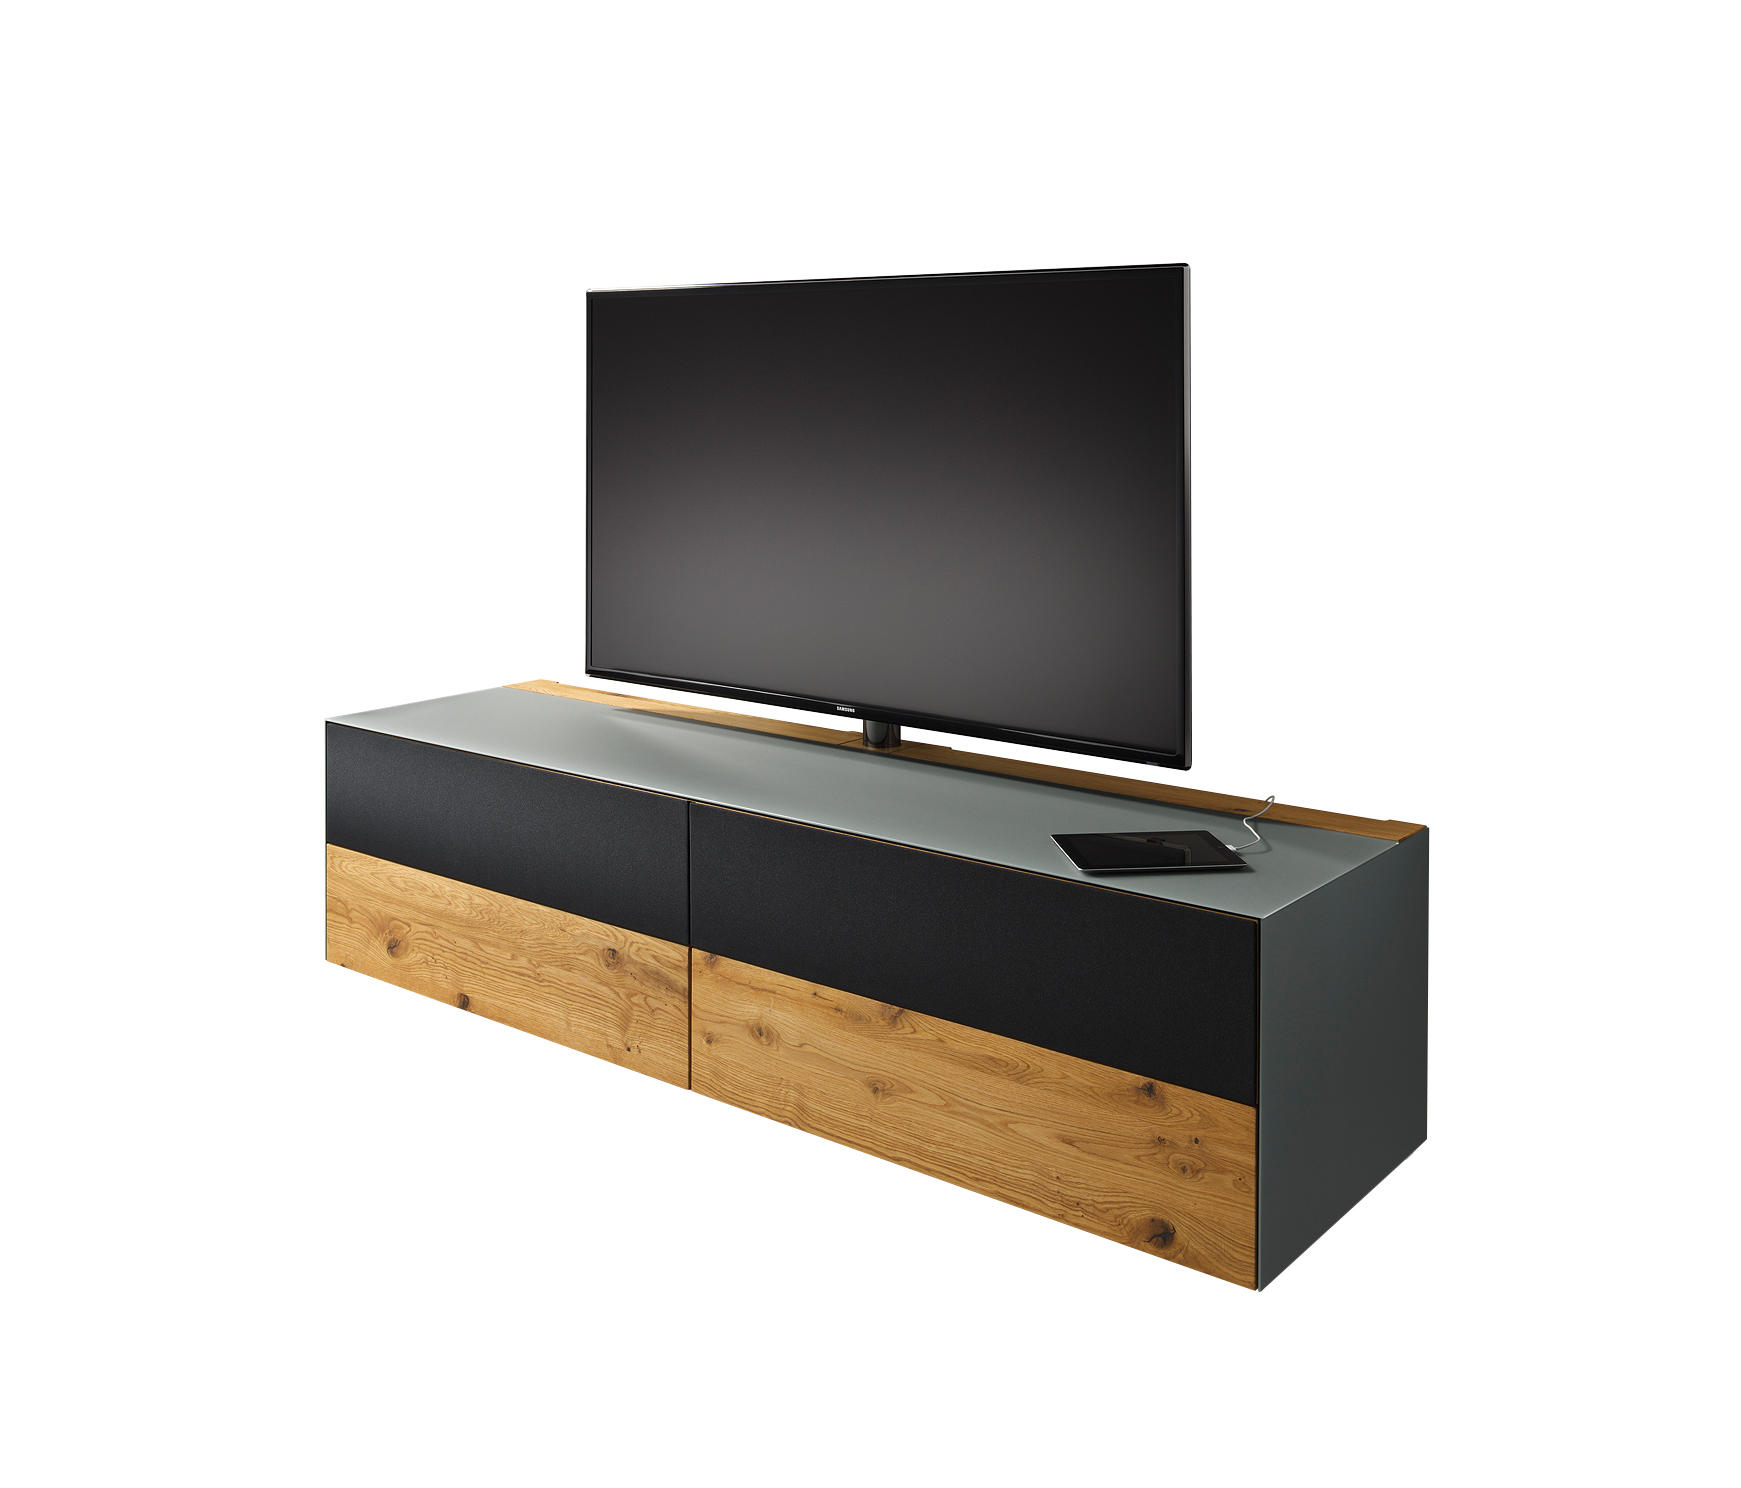 cubus pure home entertainment multimedia sideboards von team 7 architonic. Black Bedroom Furniture Sets. Home Design Ideas